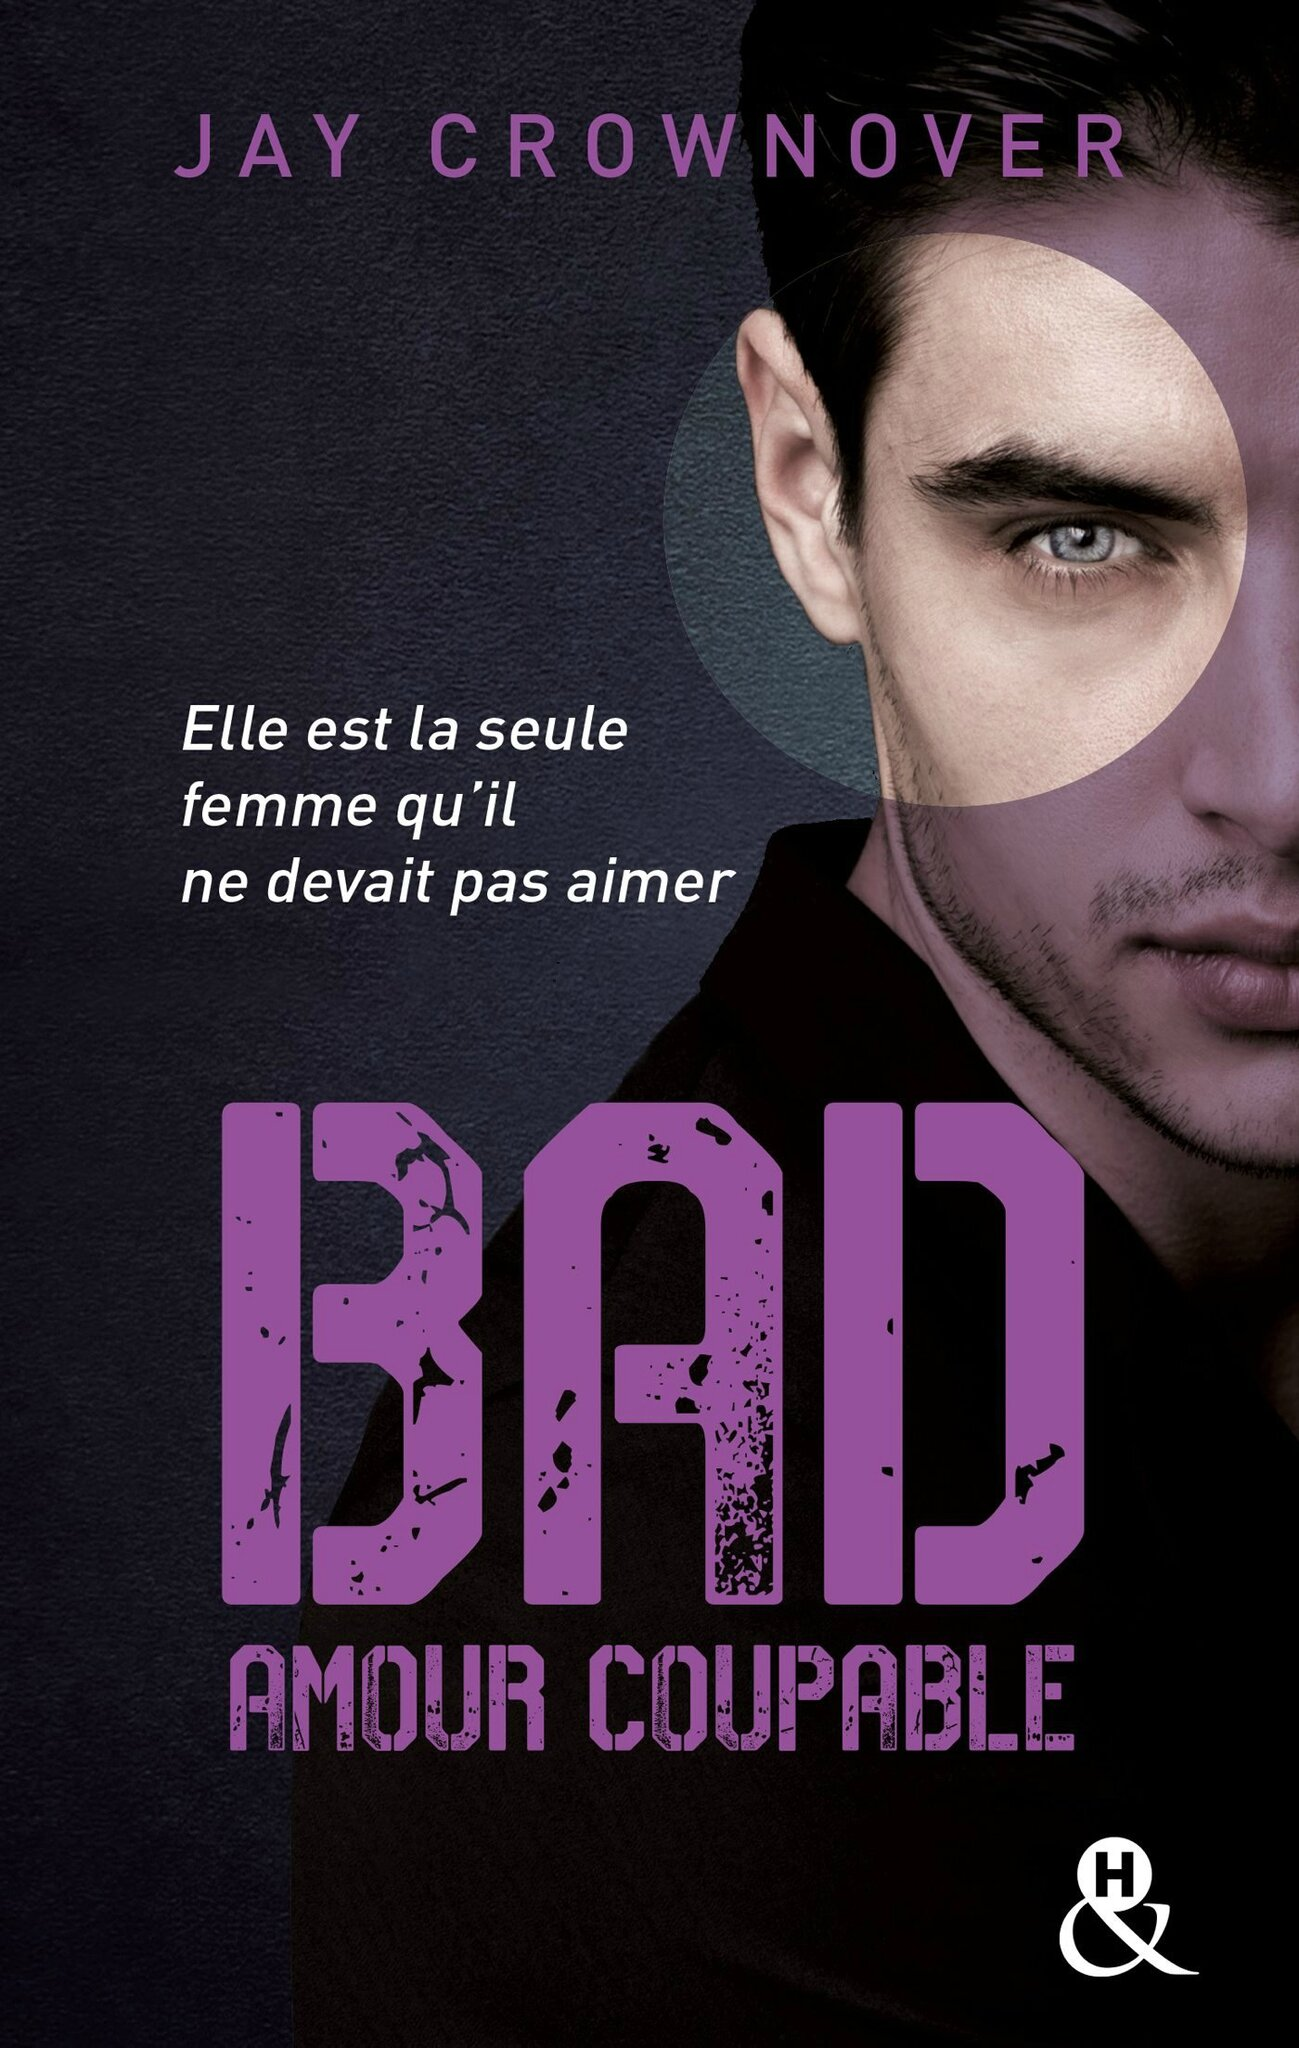 BAD Tome 3 - Amour coupable de Jay Crownover